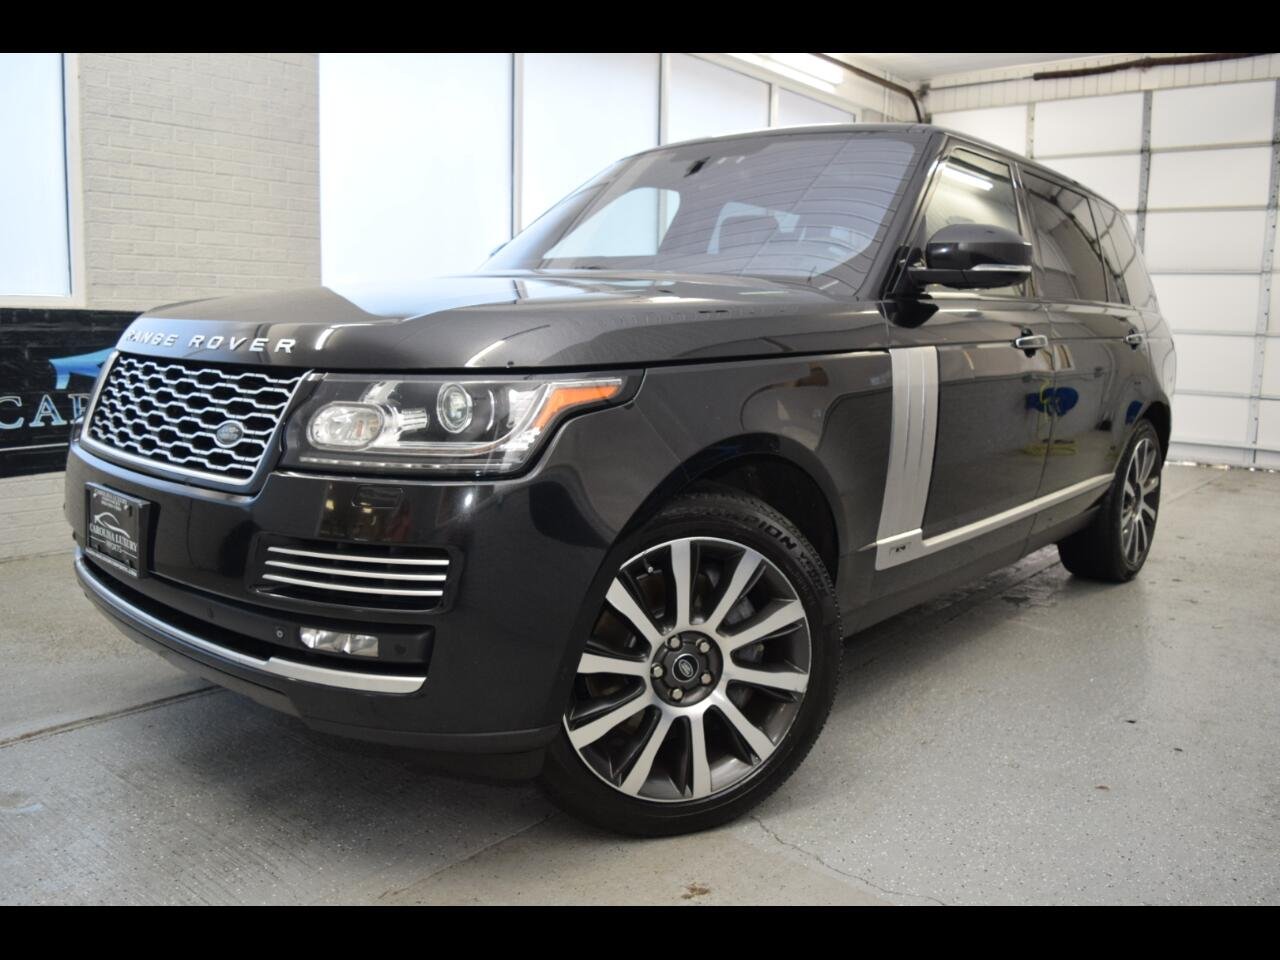 Land Rover Range Rover 4WD 4dr Autobiography Black LWB 2014